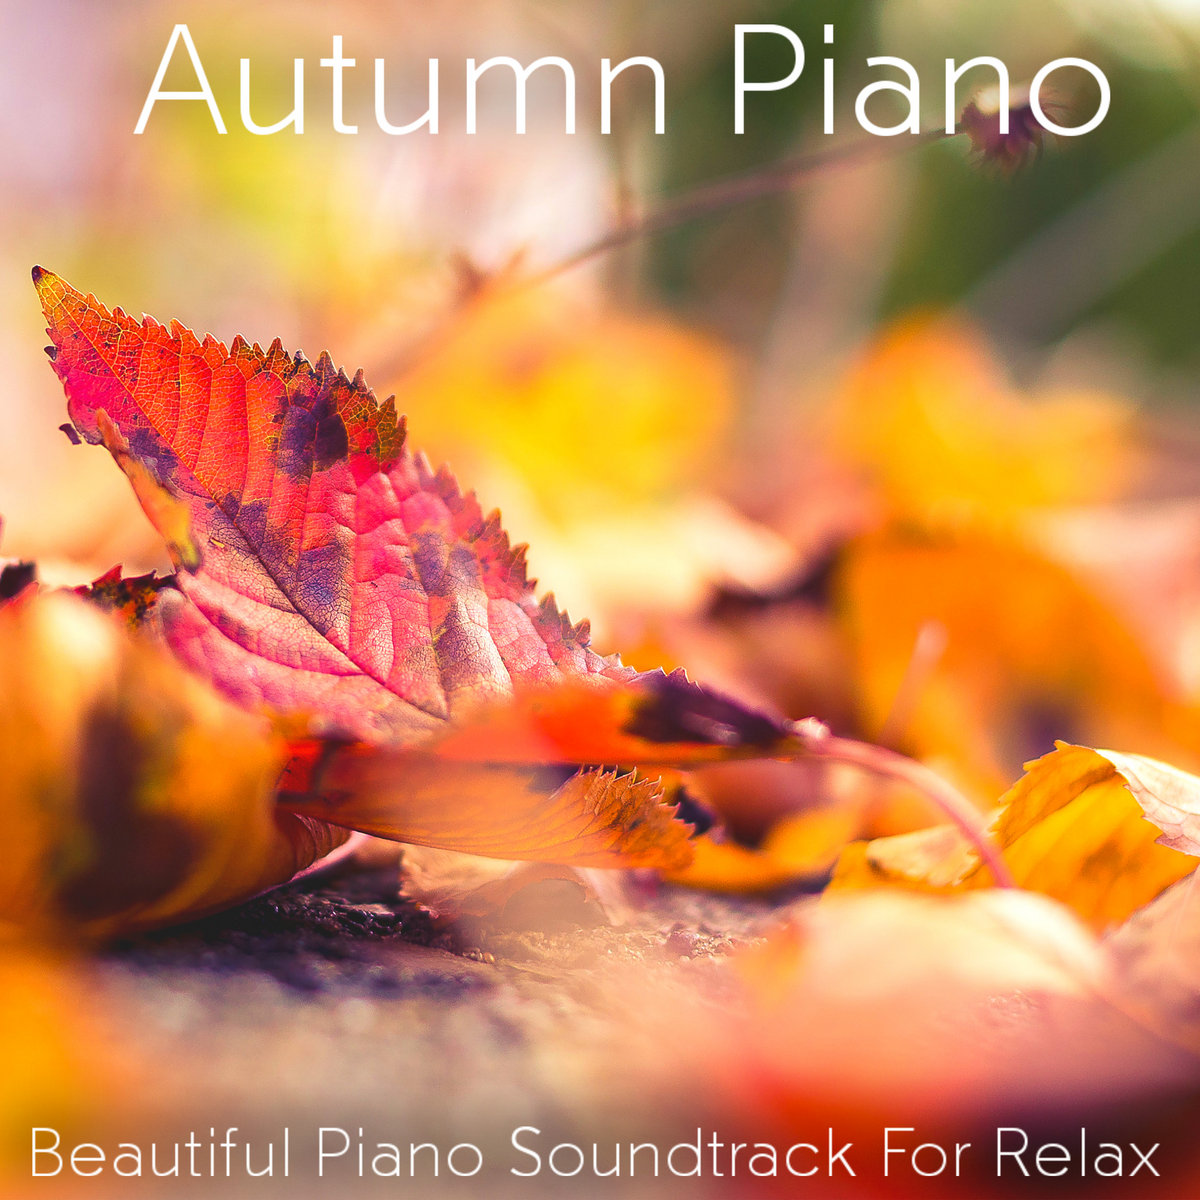 Autumn Piano (Beautiful Piano Soundtrack For Relax) | Deep